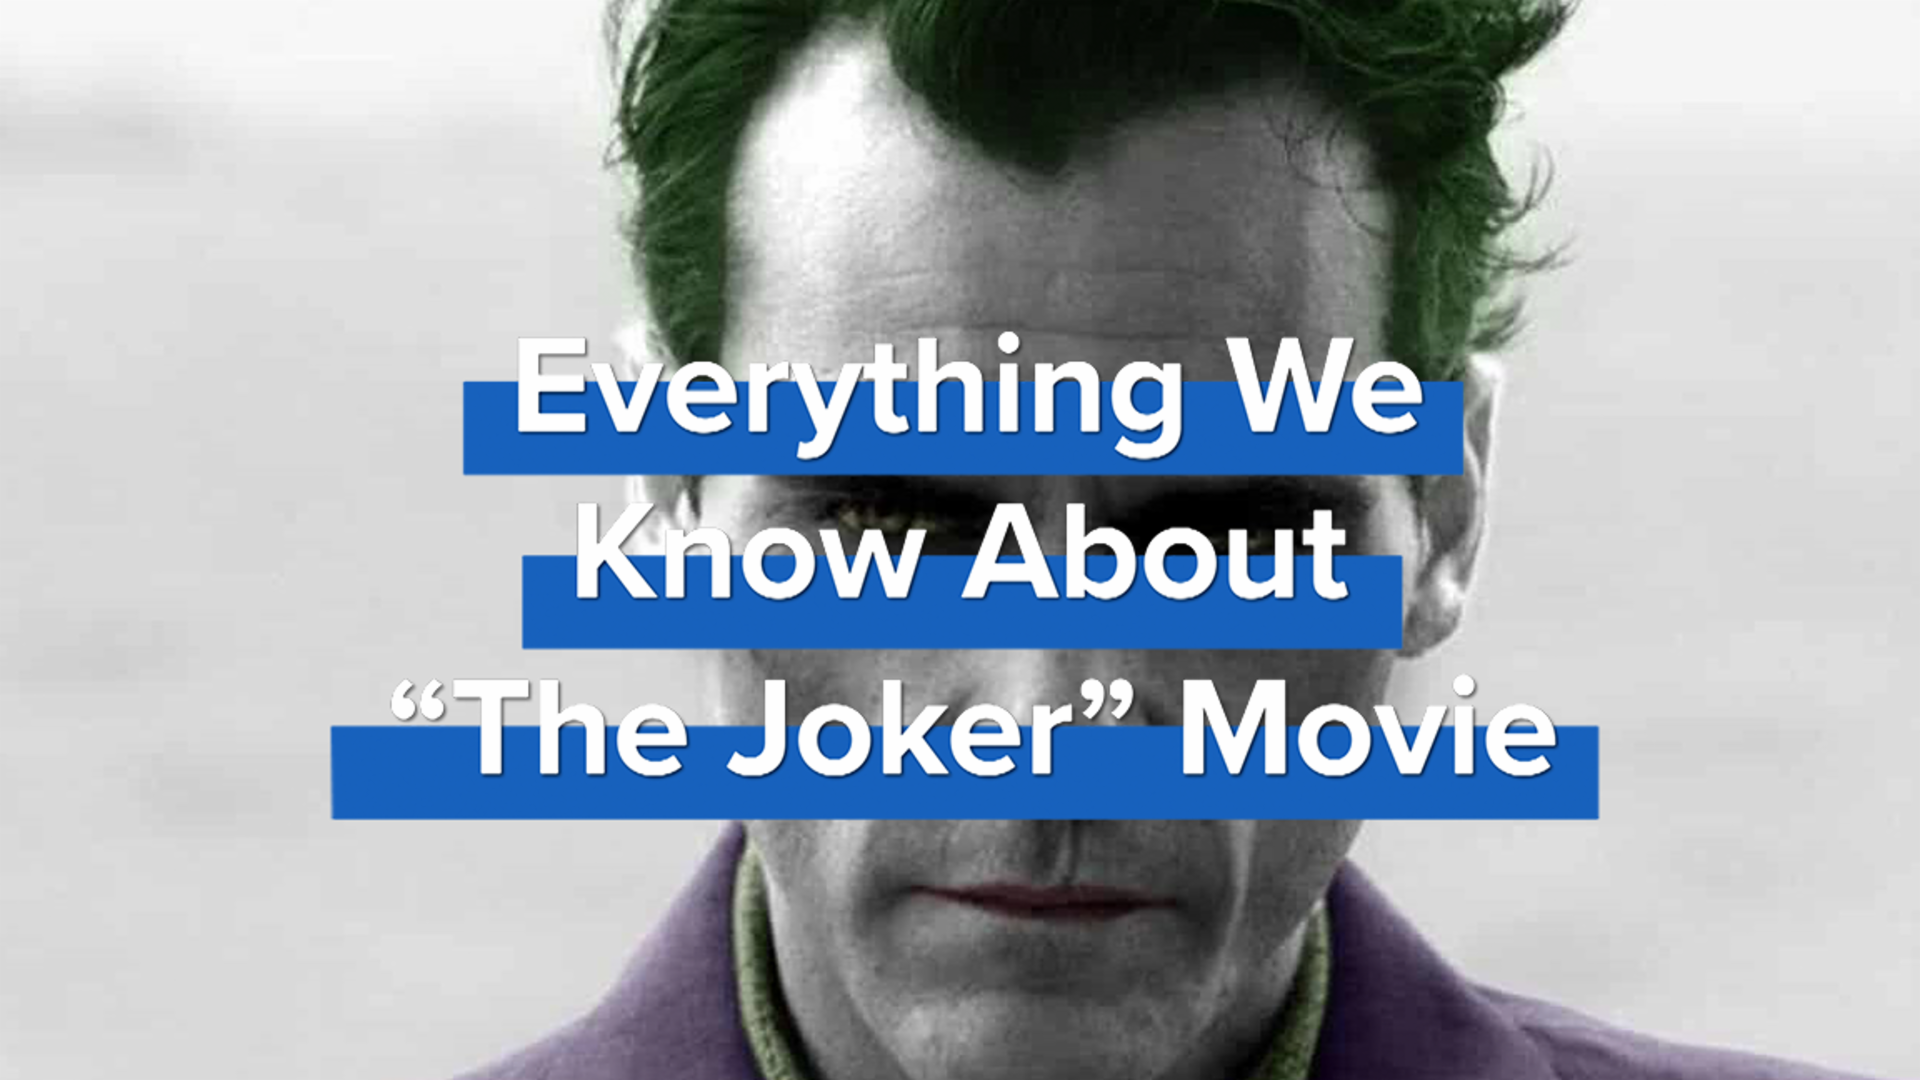 Everything We Know About The Joker Movie screen capture